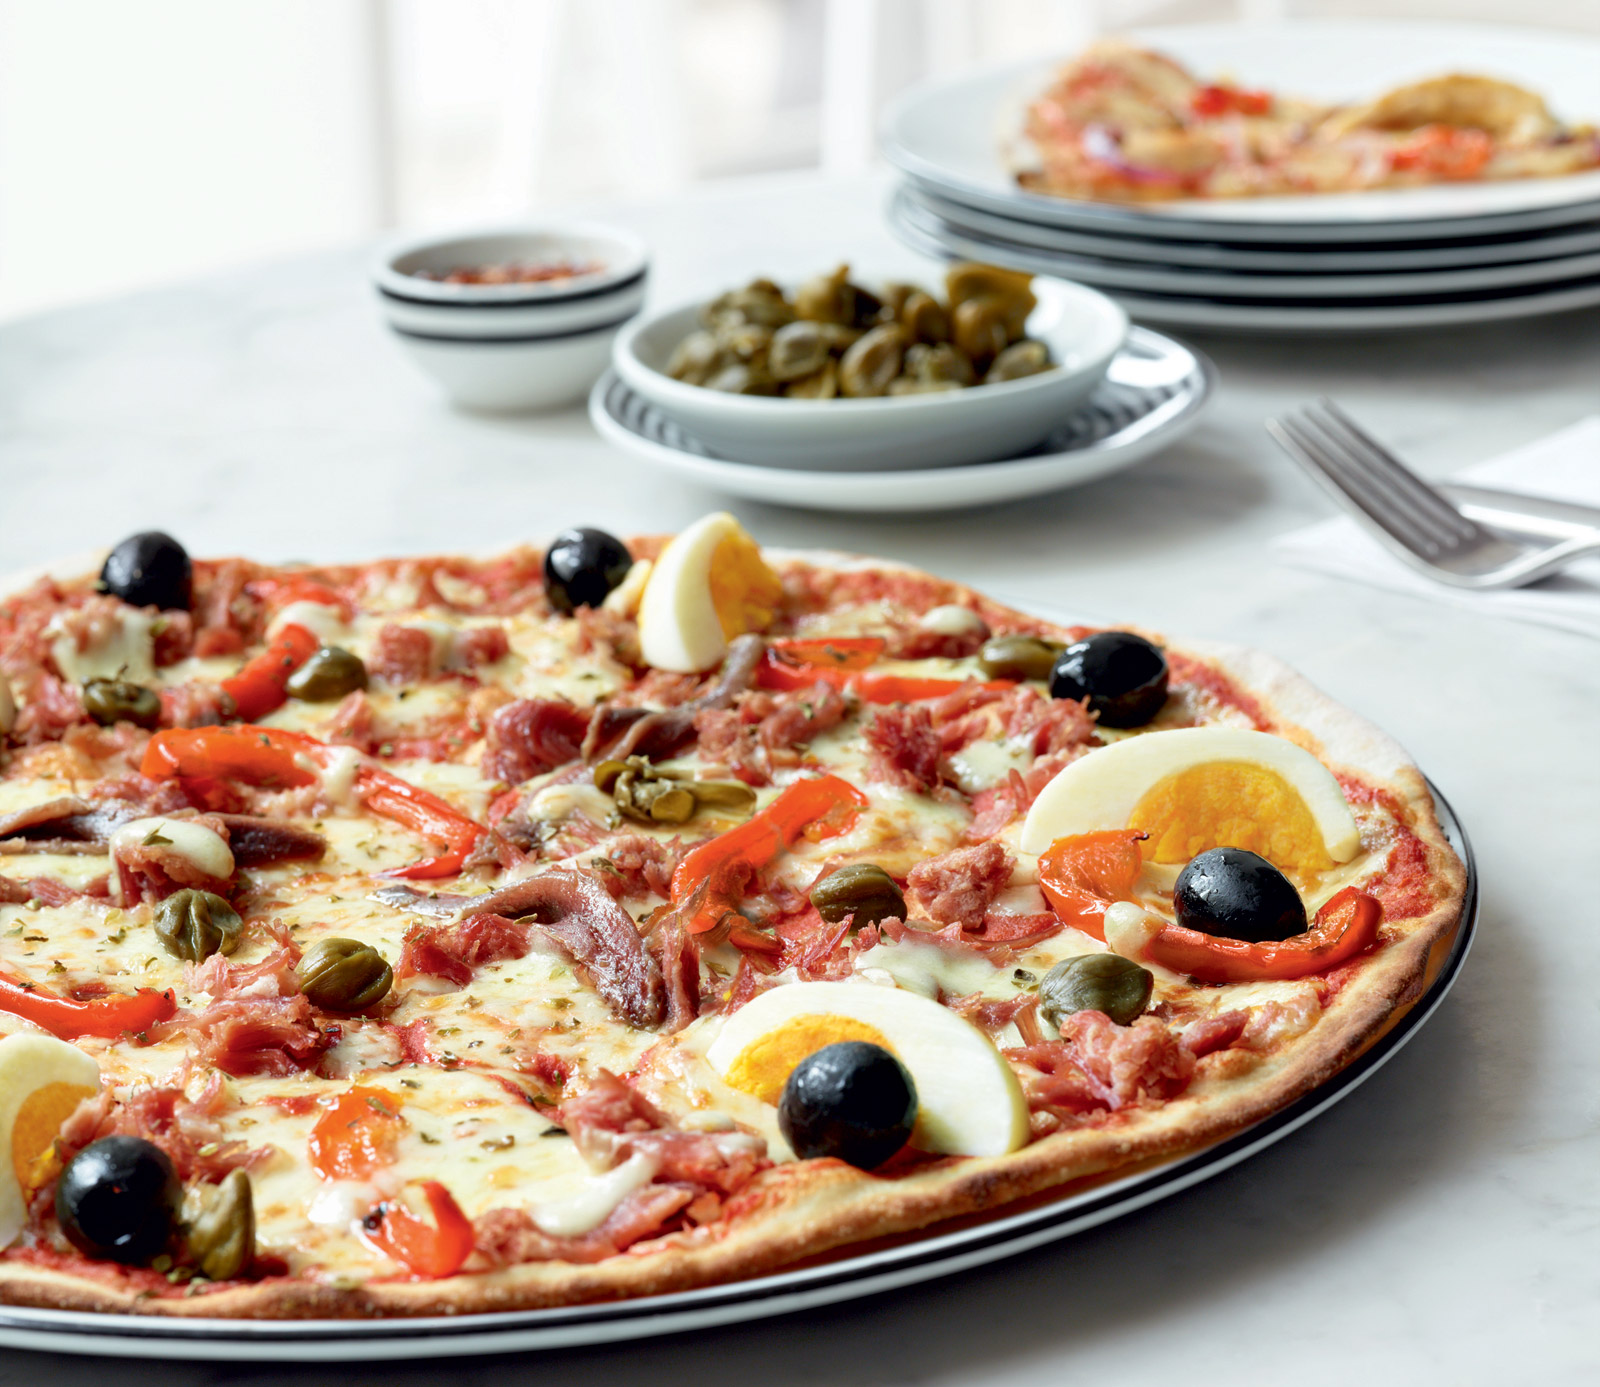 PizzaExpress Kennington - London